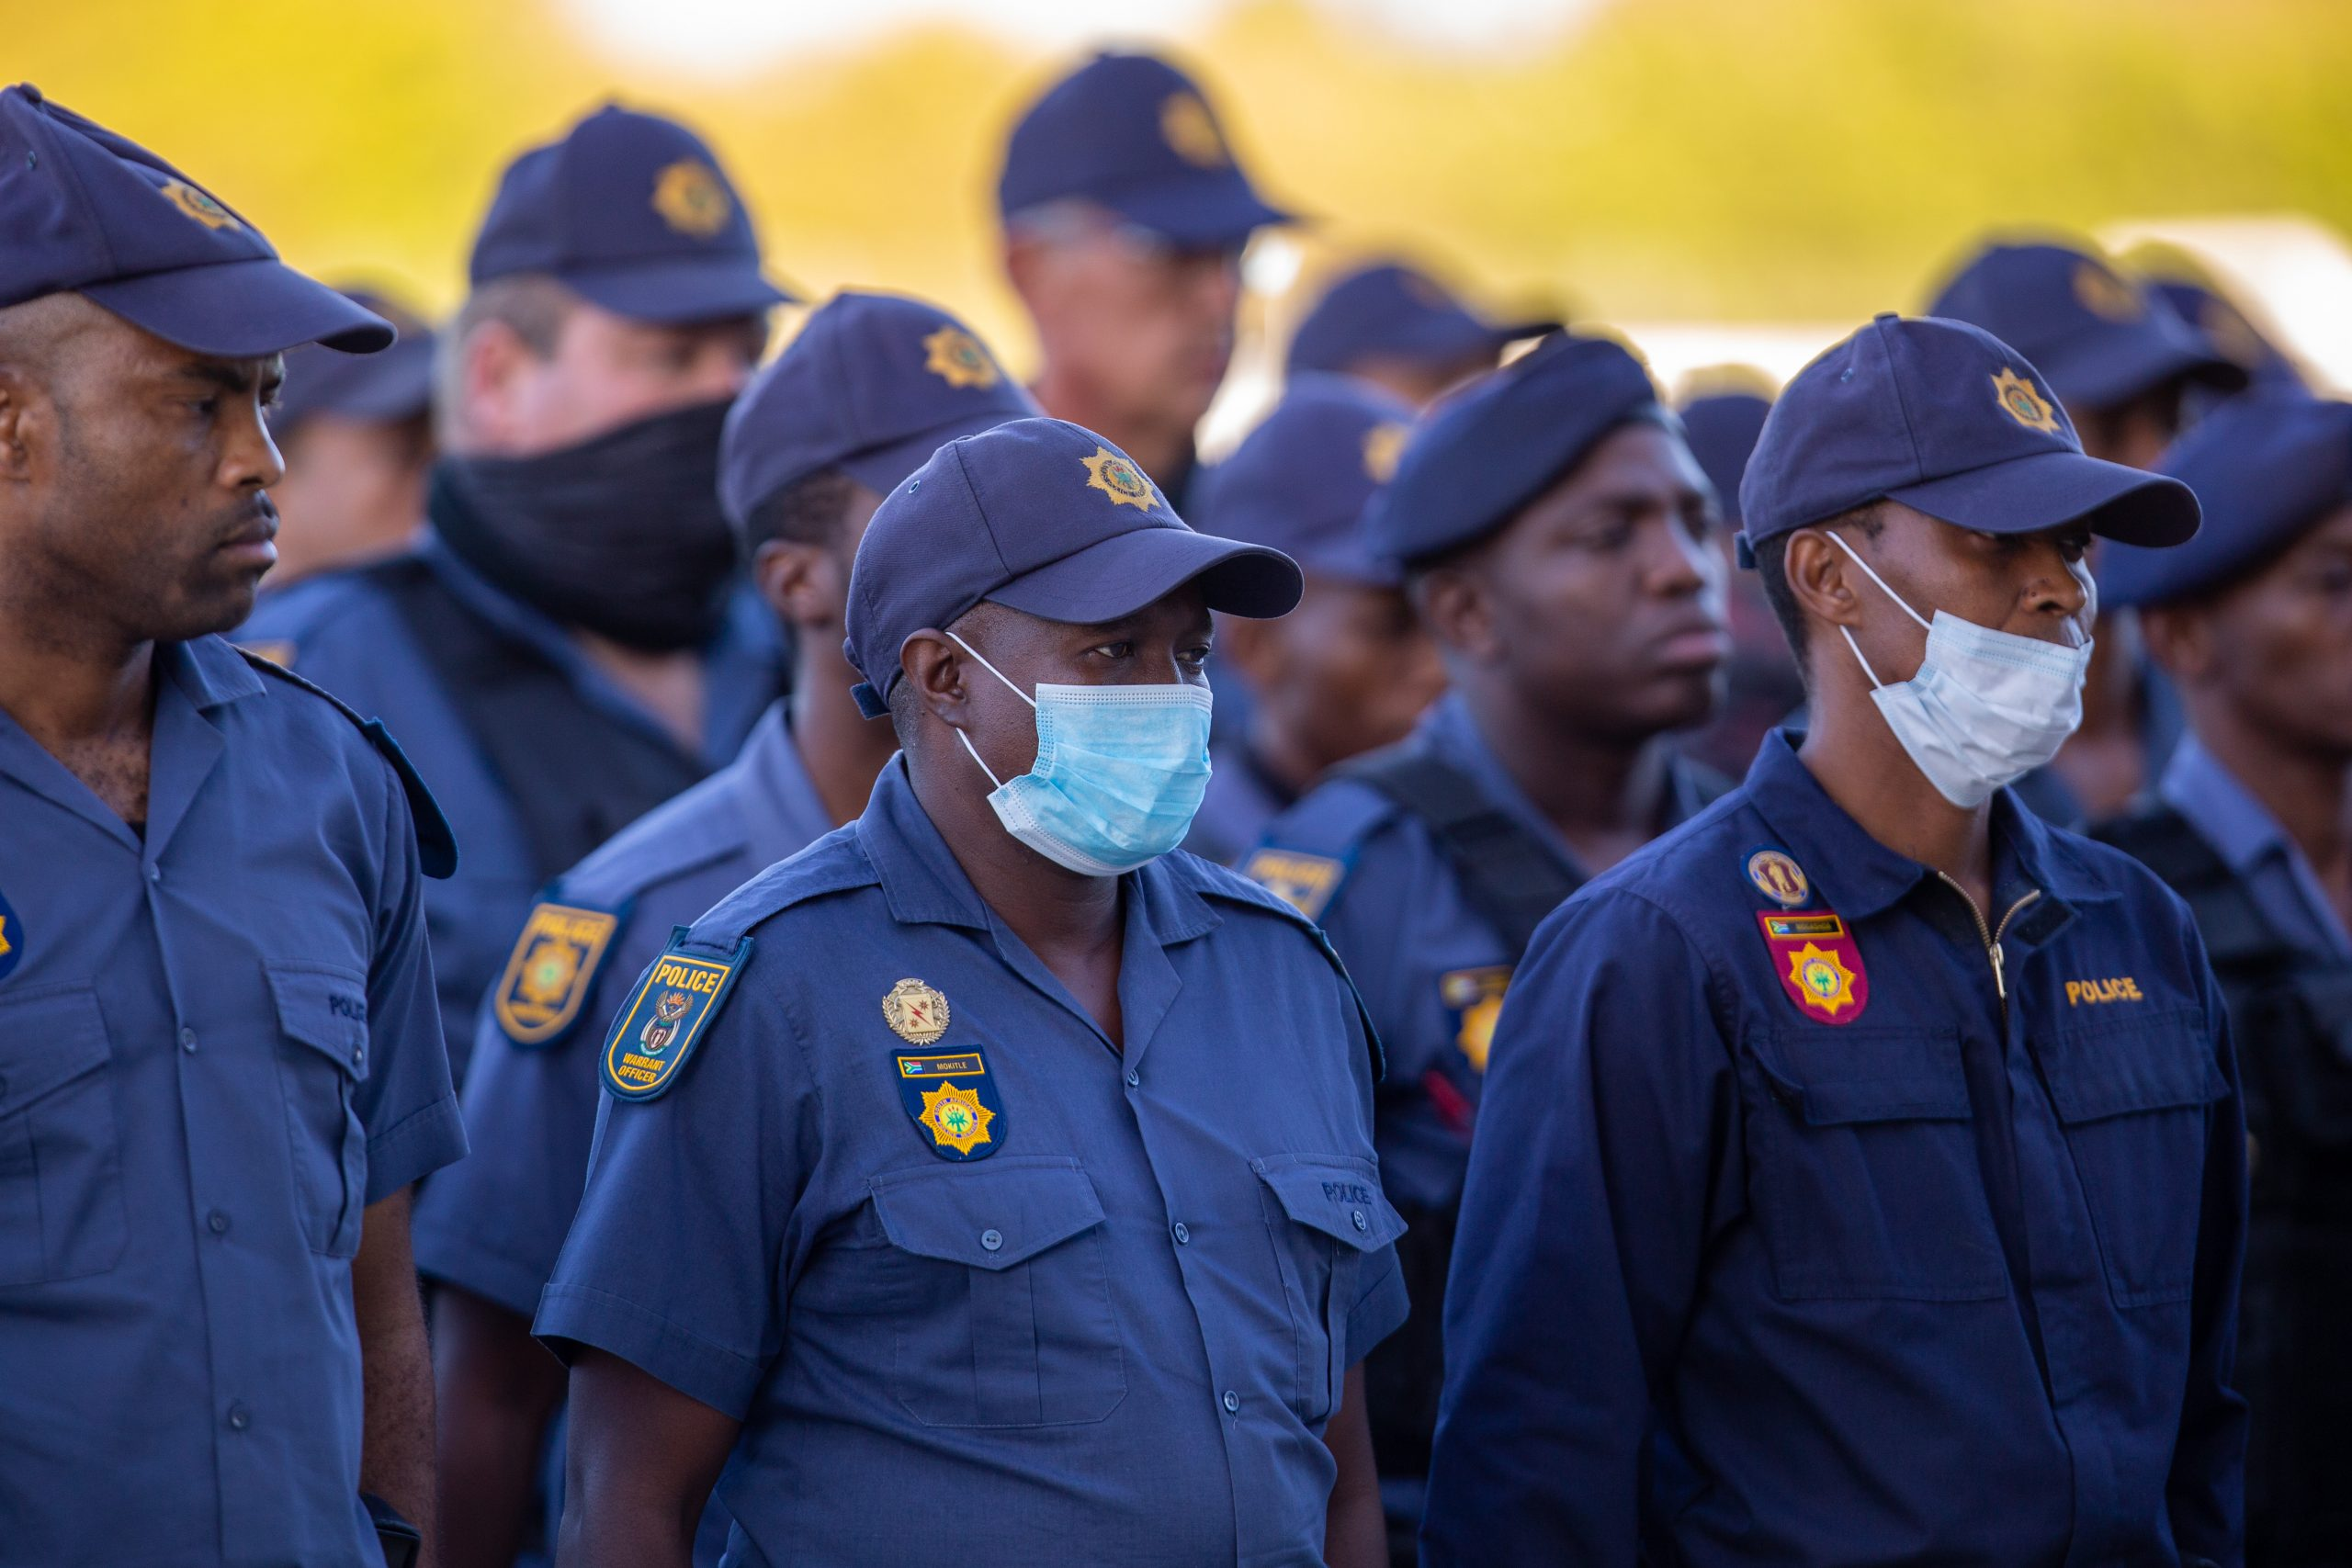 Police Ministry and SAPS management visit operations on Day Two of National Lockdown